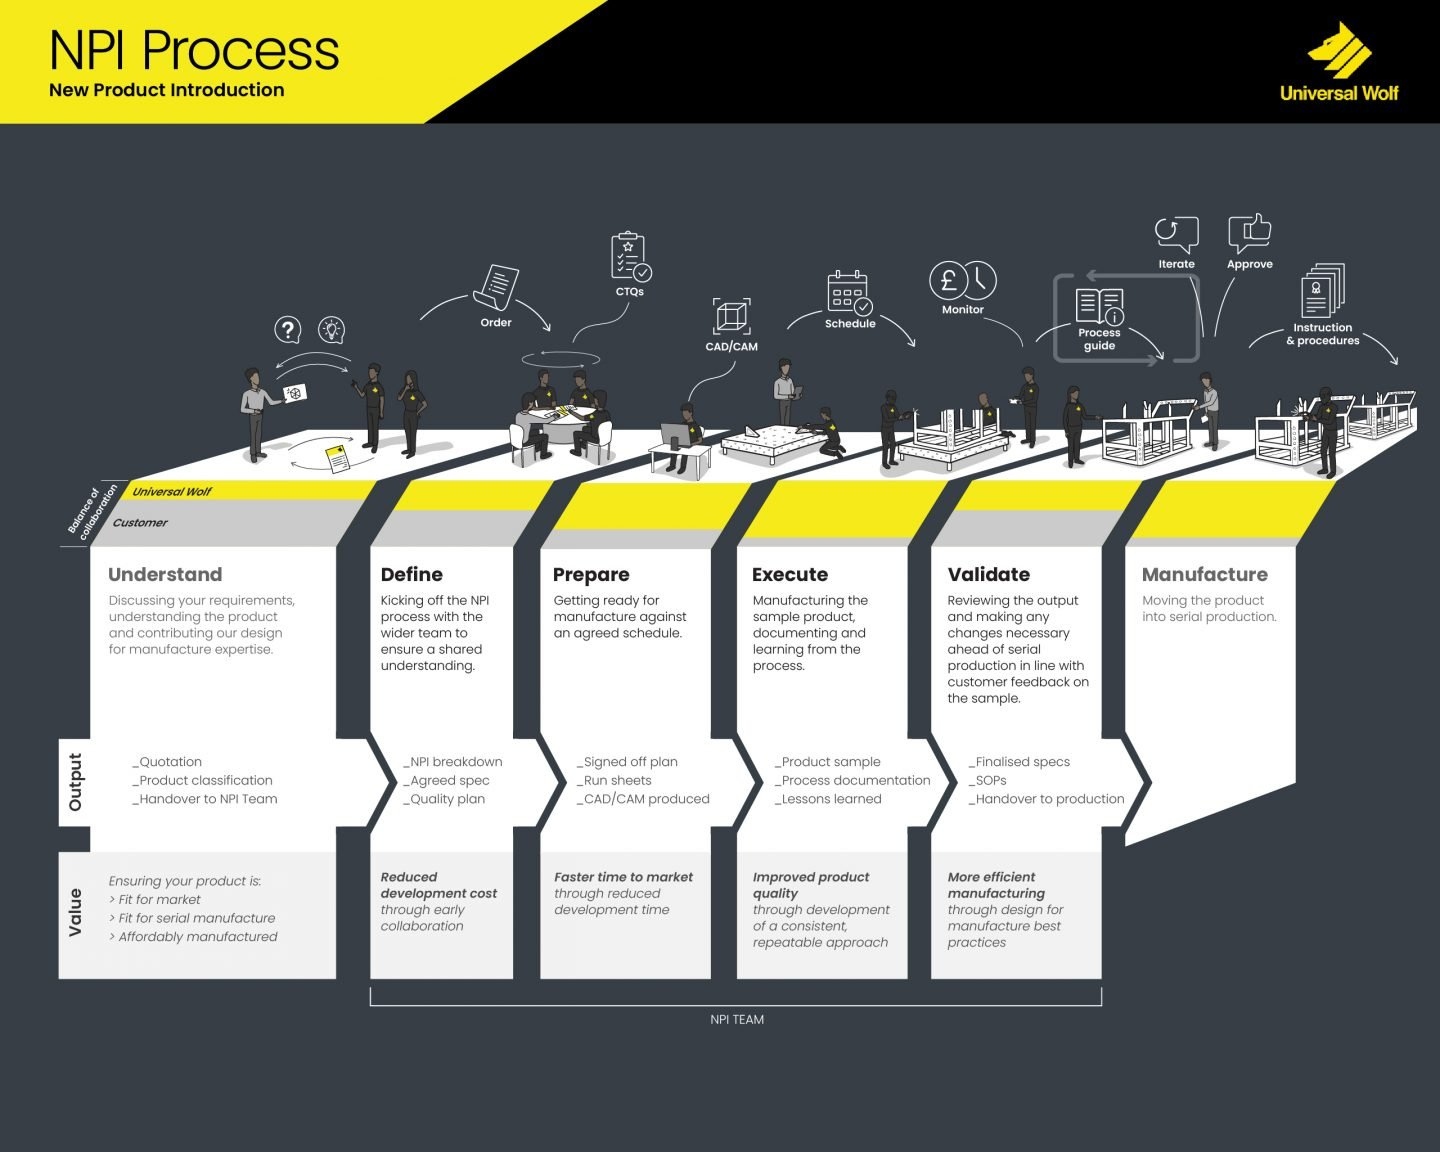 New Product Introduction Process Key